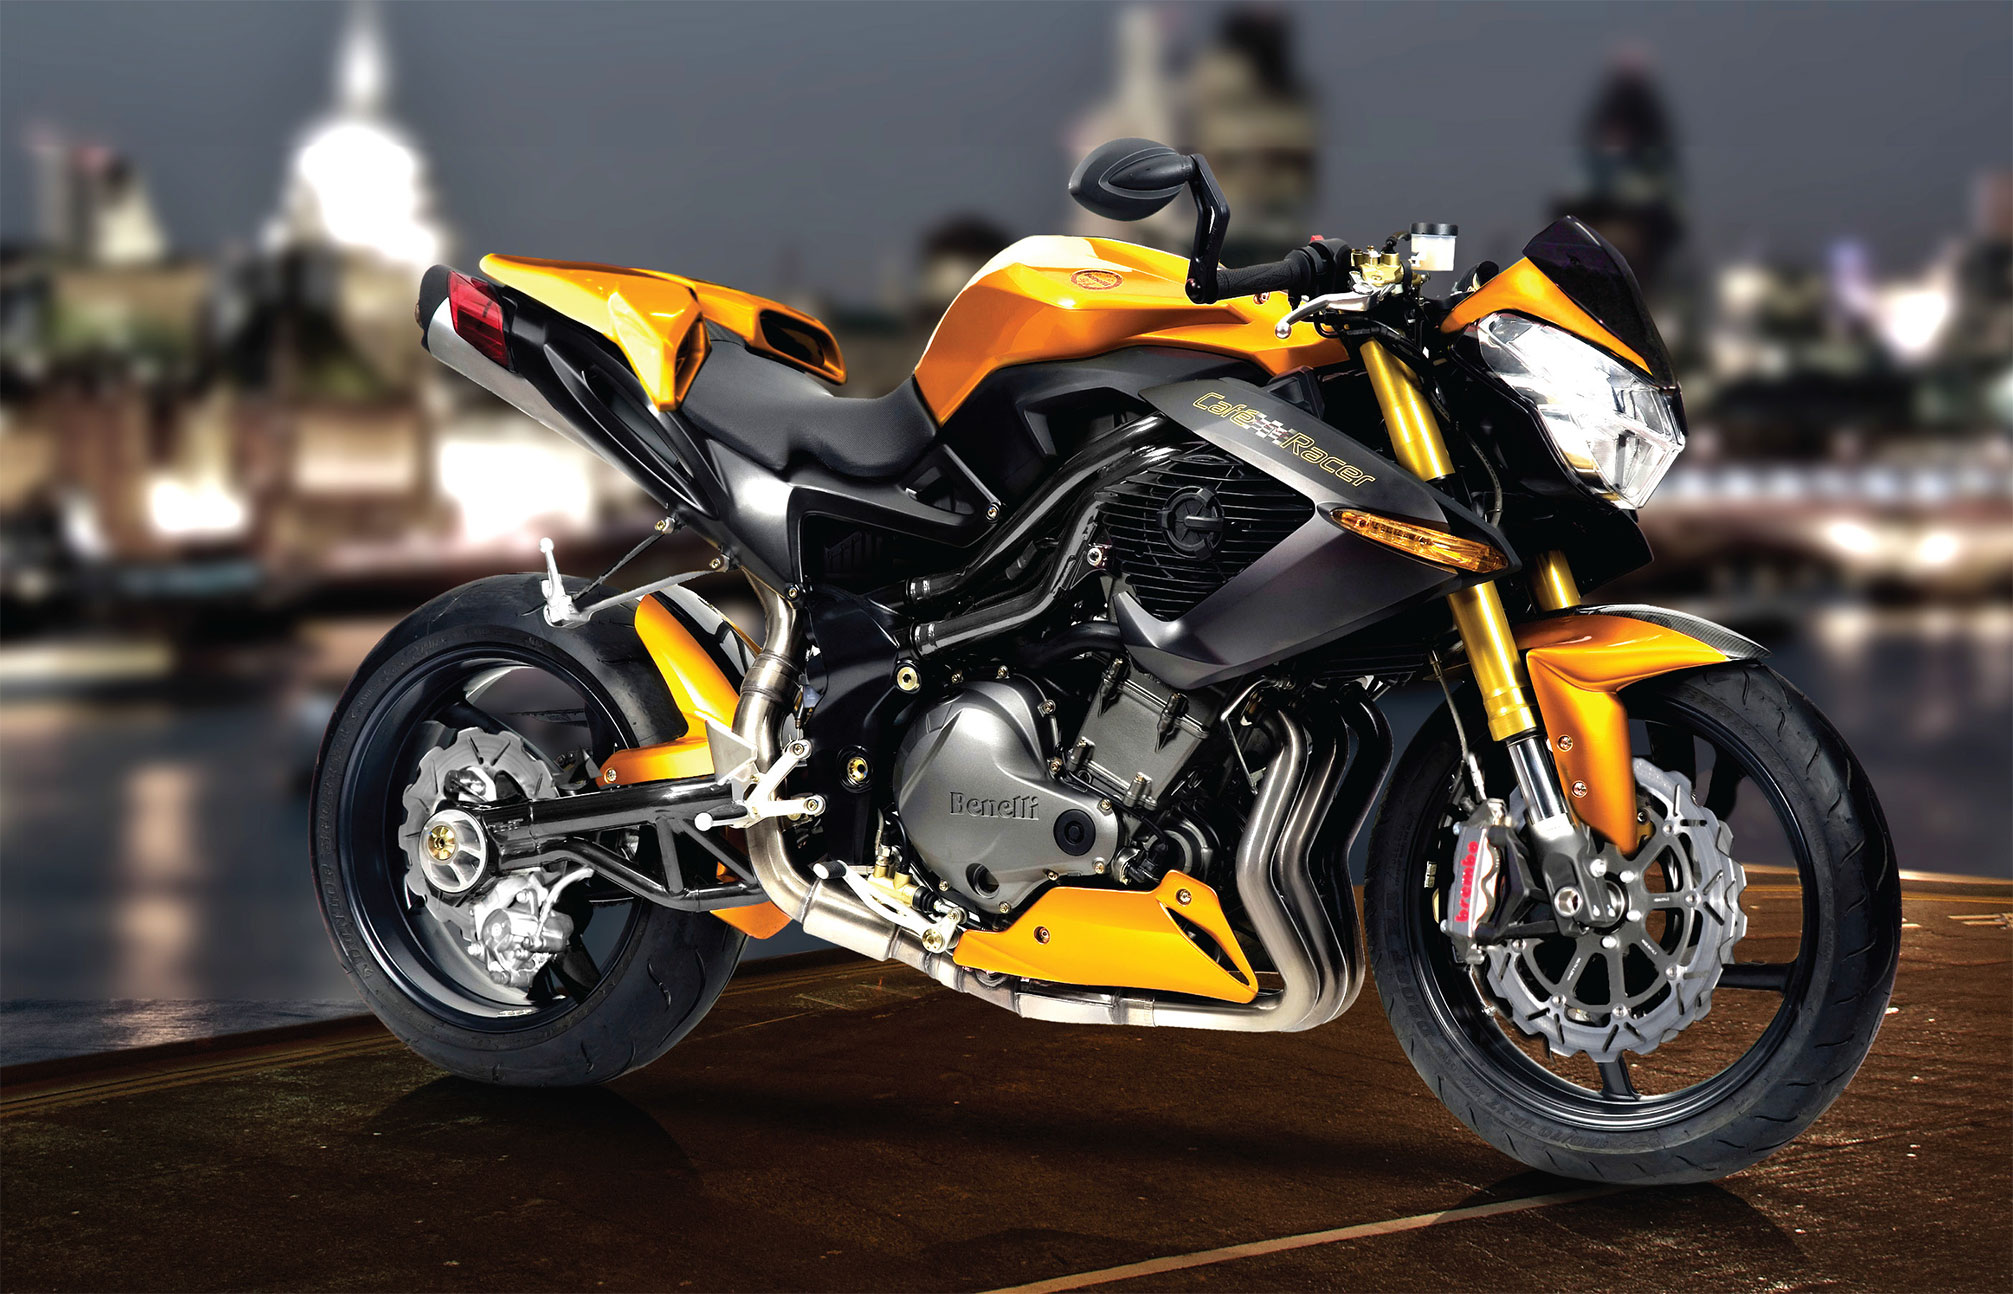 2013 Benelli Cafe Racer 1130 Review